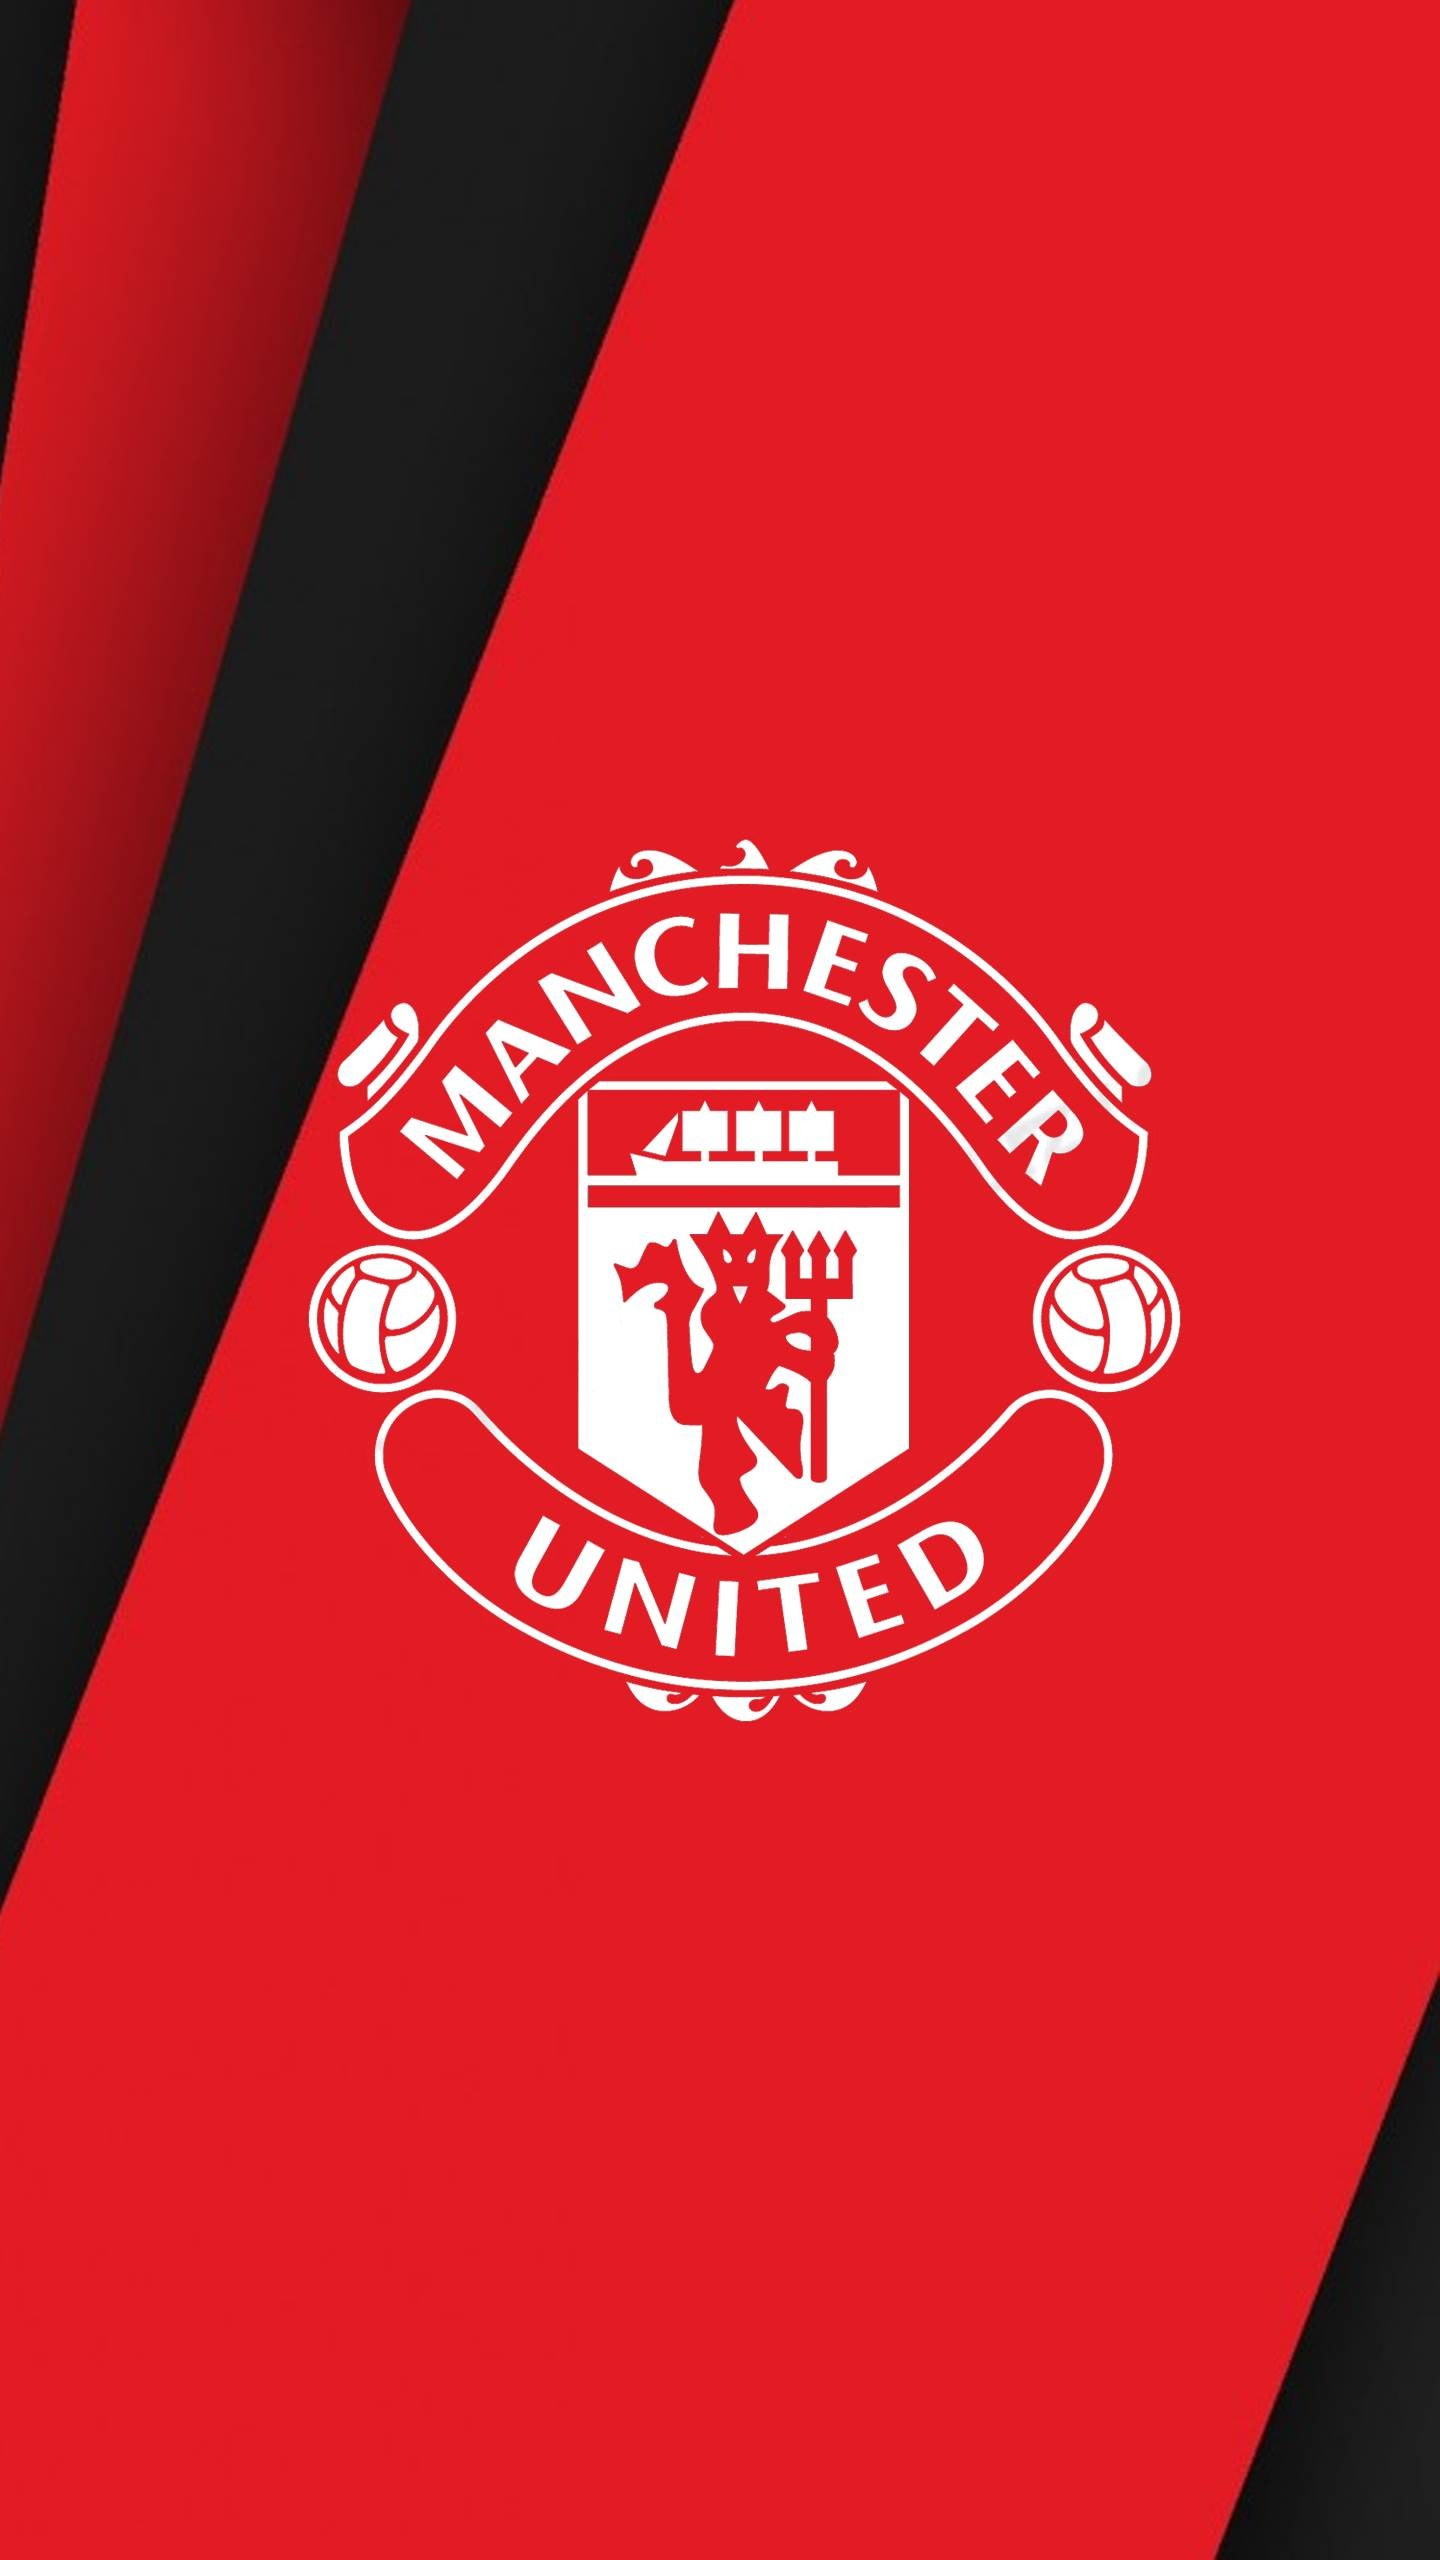 manchester united wallpaper android: Man Utd Wallpaper 2018 (77+ Images